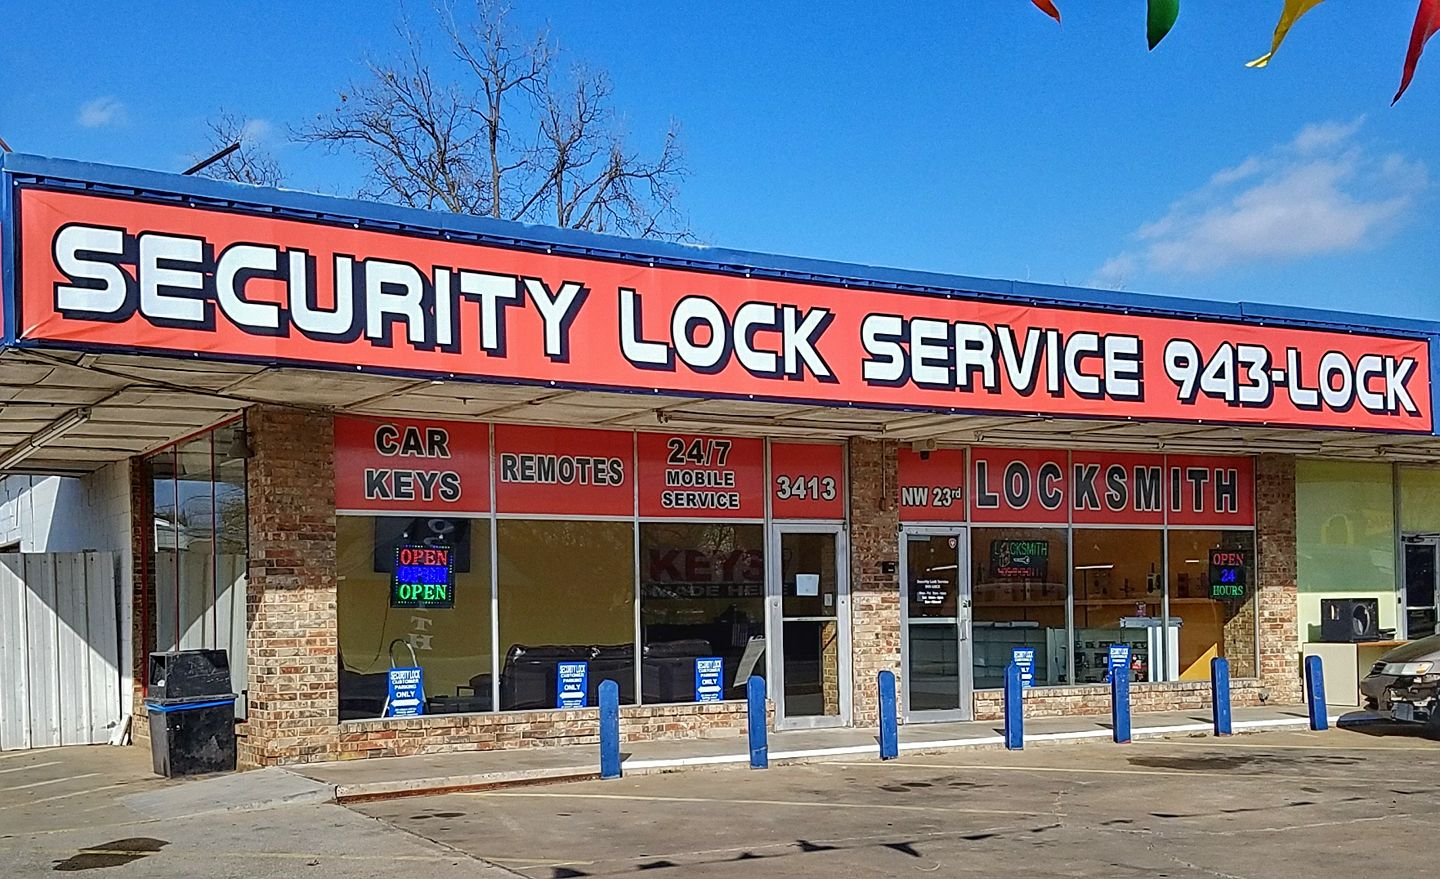 Security Locksmith OKC Offers Solutions for All Locking and Unlocking Issues in Oklahoma City